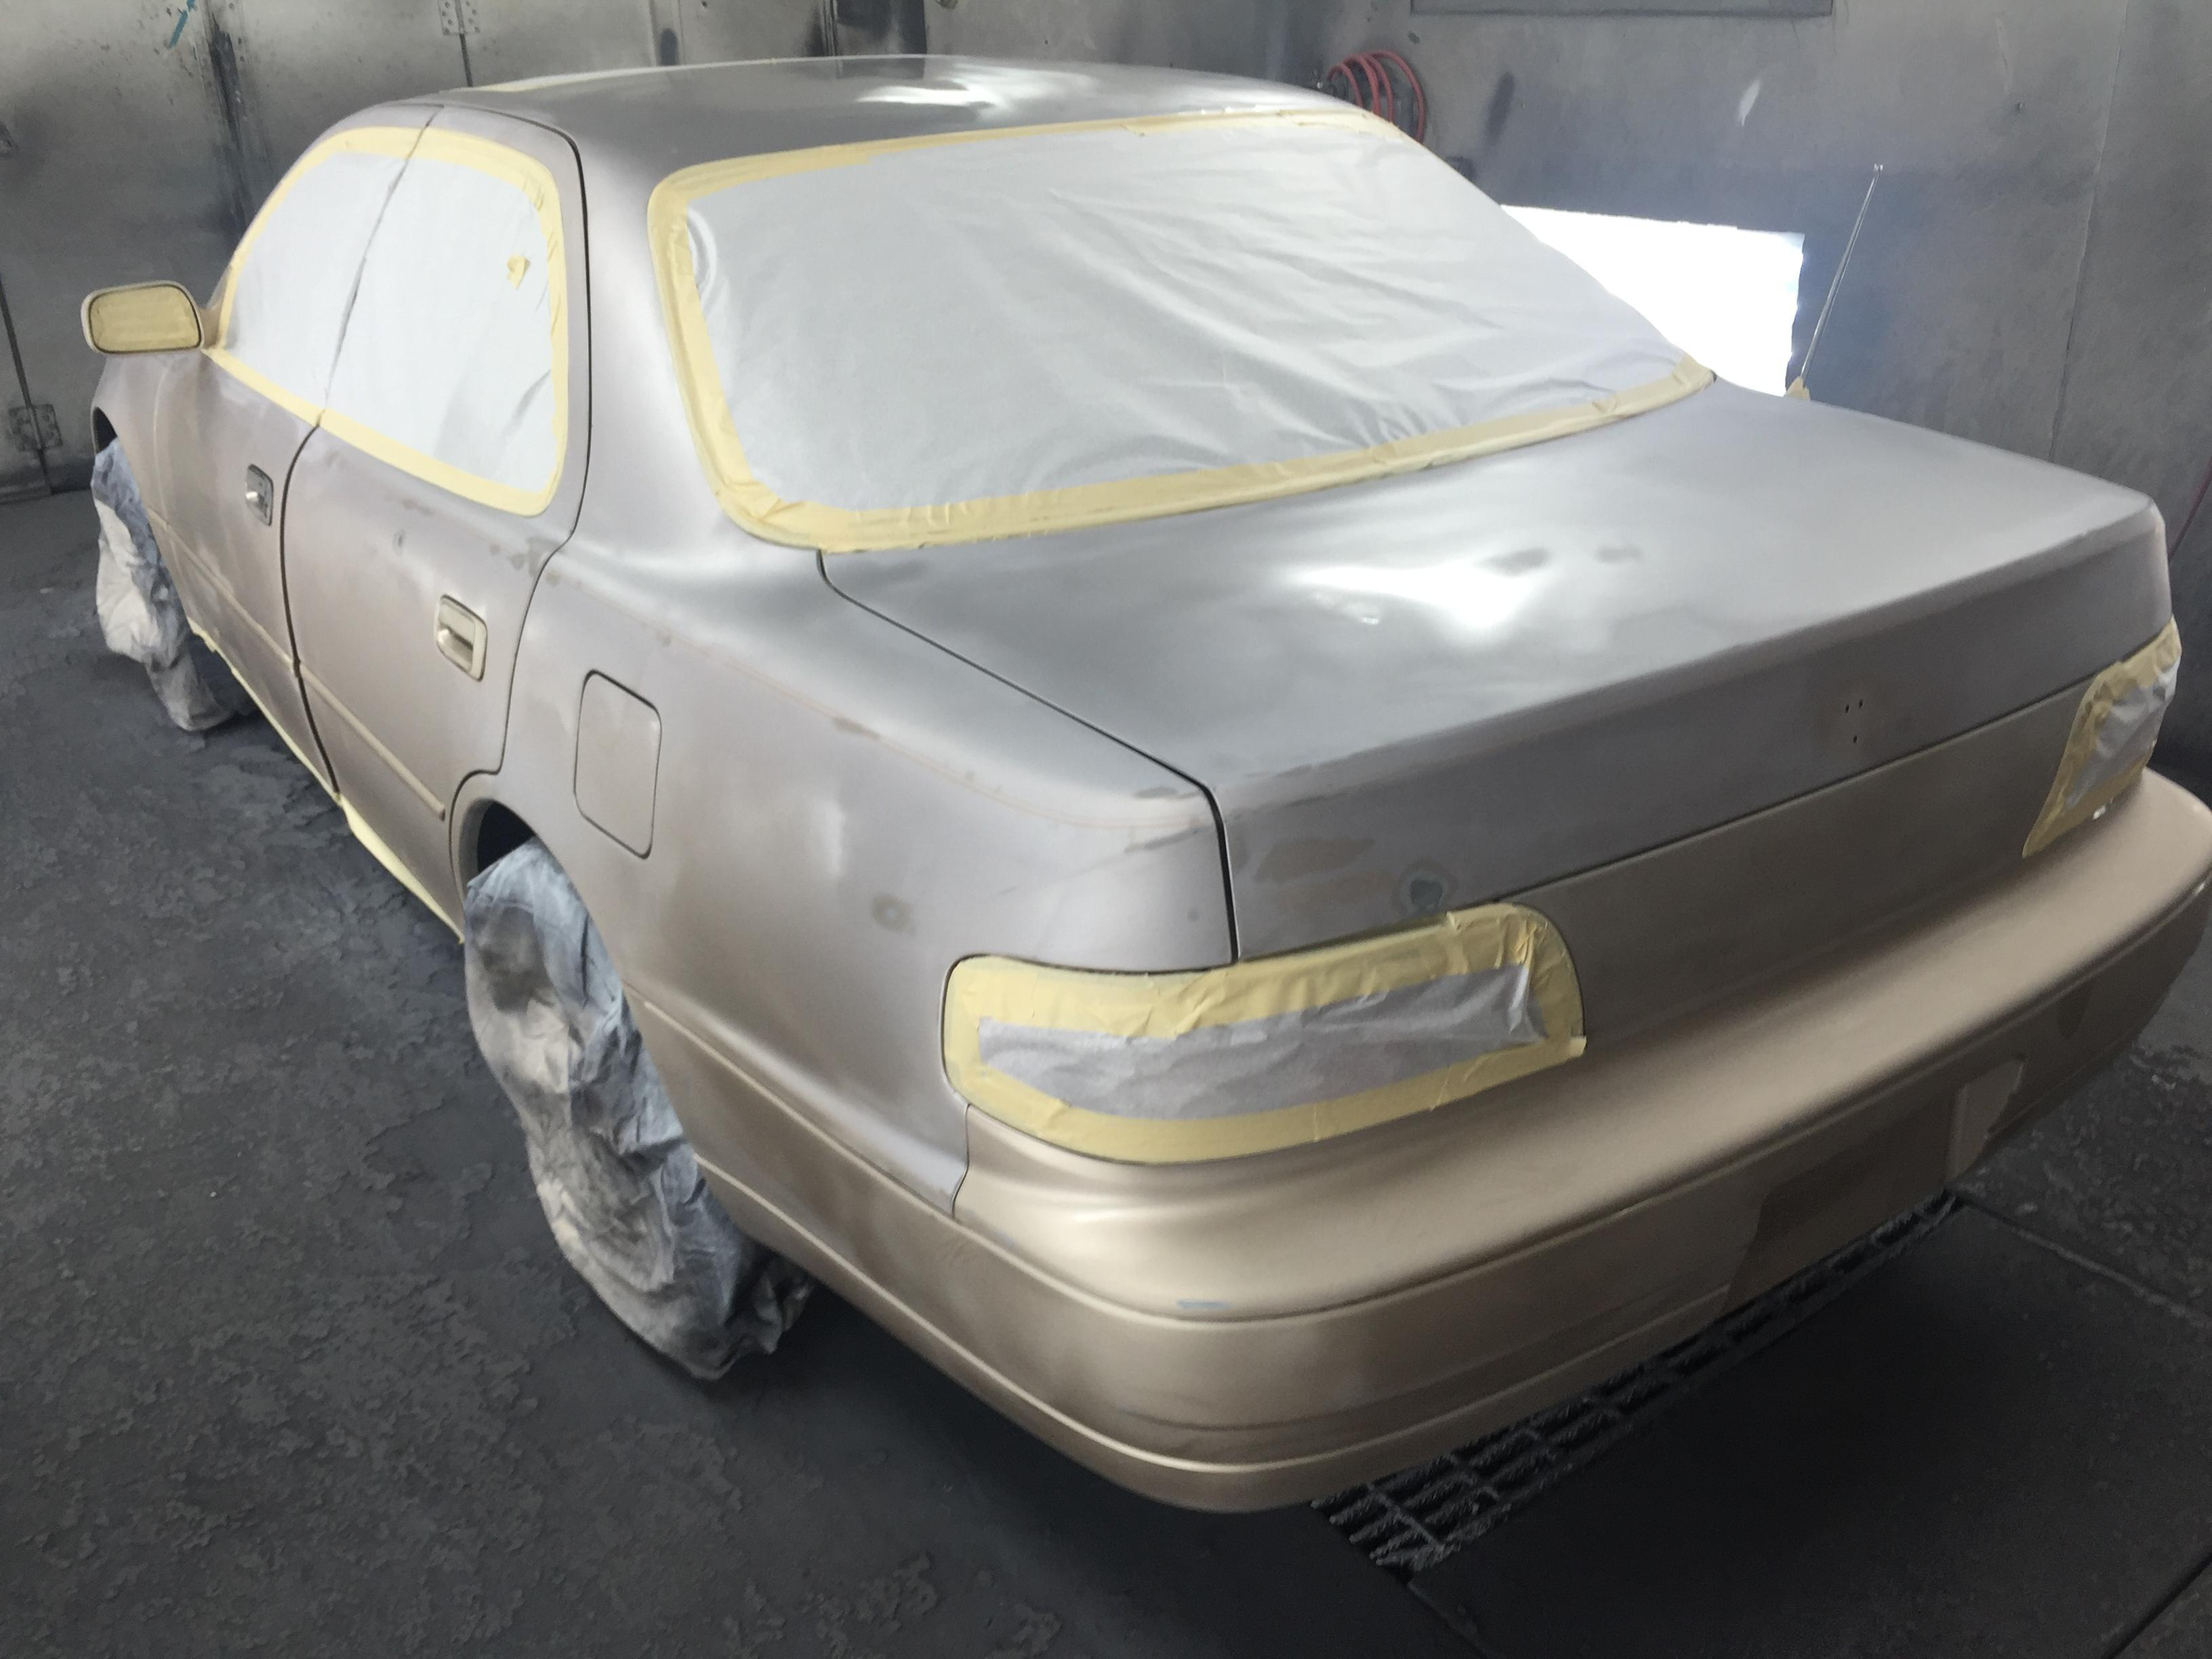 Maaco Collision Repair & Auto Painting image 90